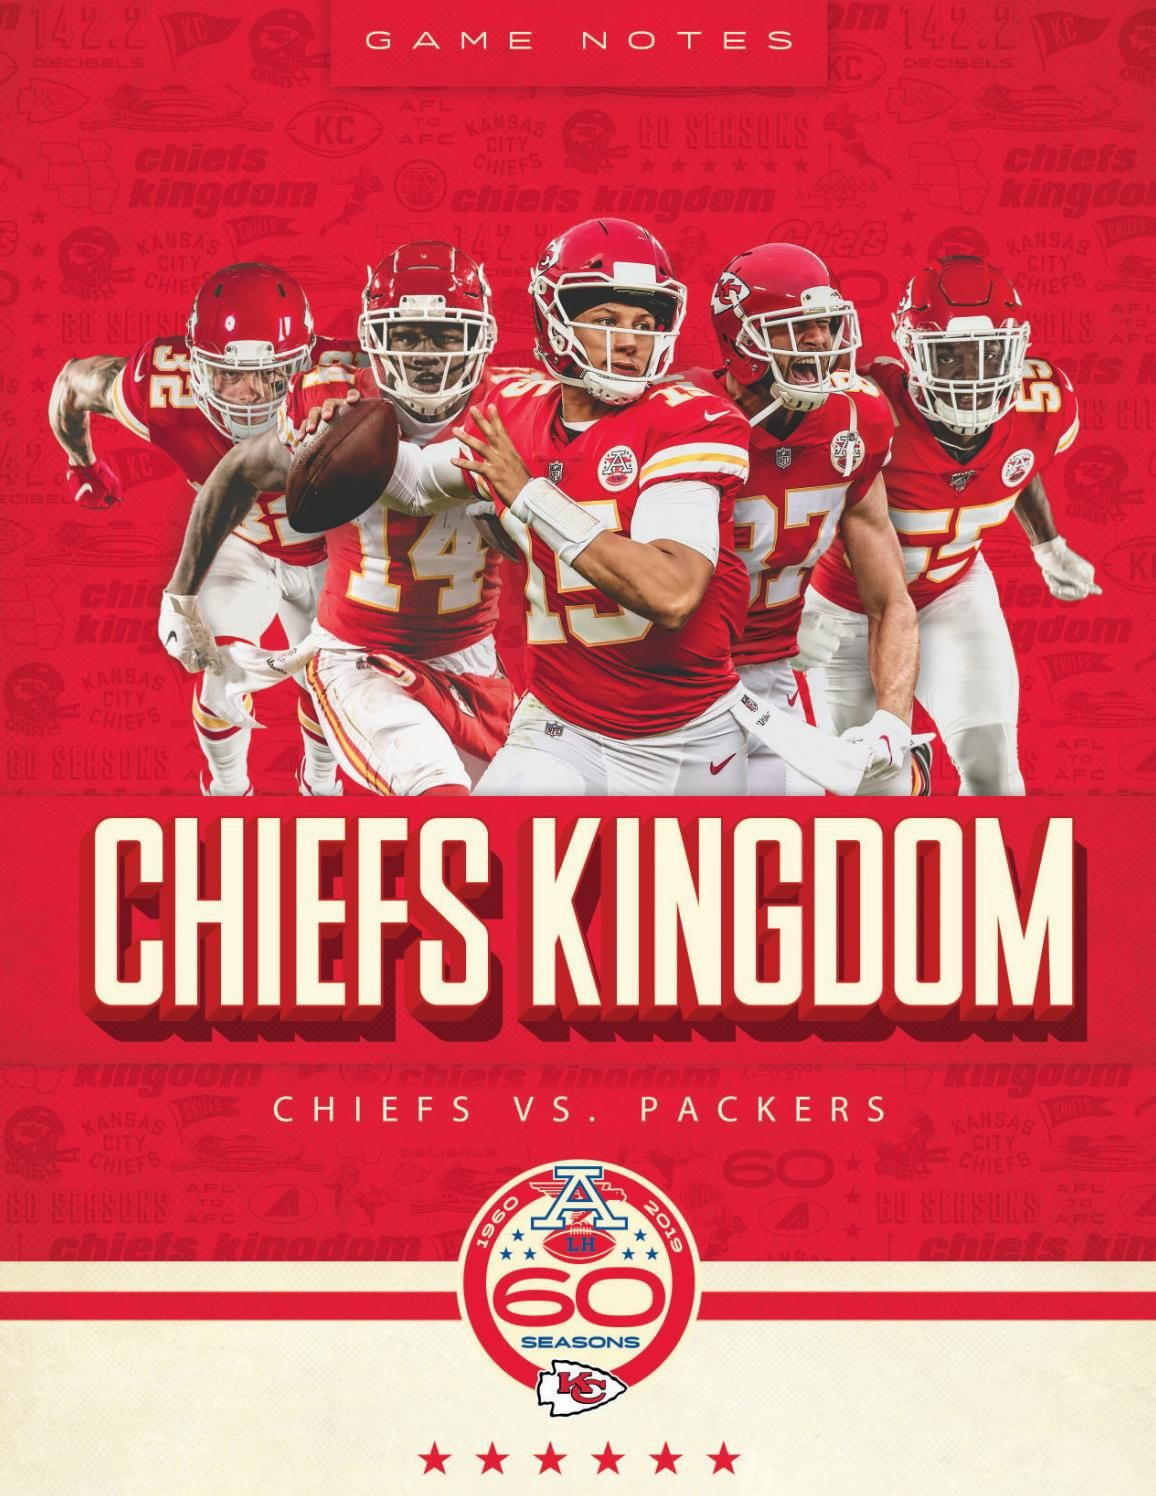 Preseason Game 4 Chiefs At Packers 8 29 19 By Kansas Is The Perfect High Quality Nfl Superbowl Wallpaper With Hd Resolution Kc Chiefs Chiefs Wallpaper Chief